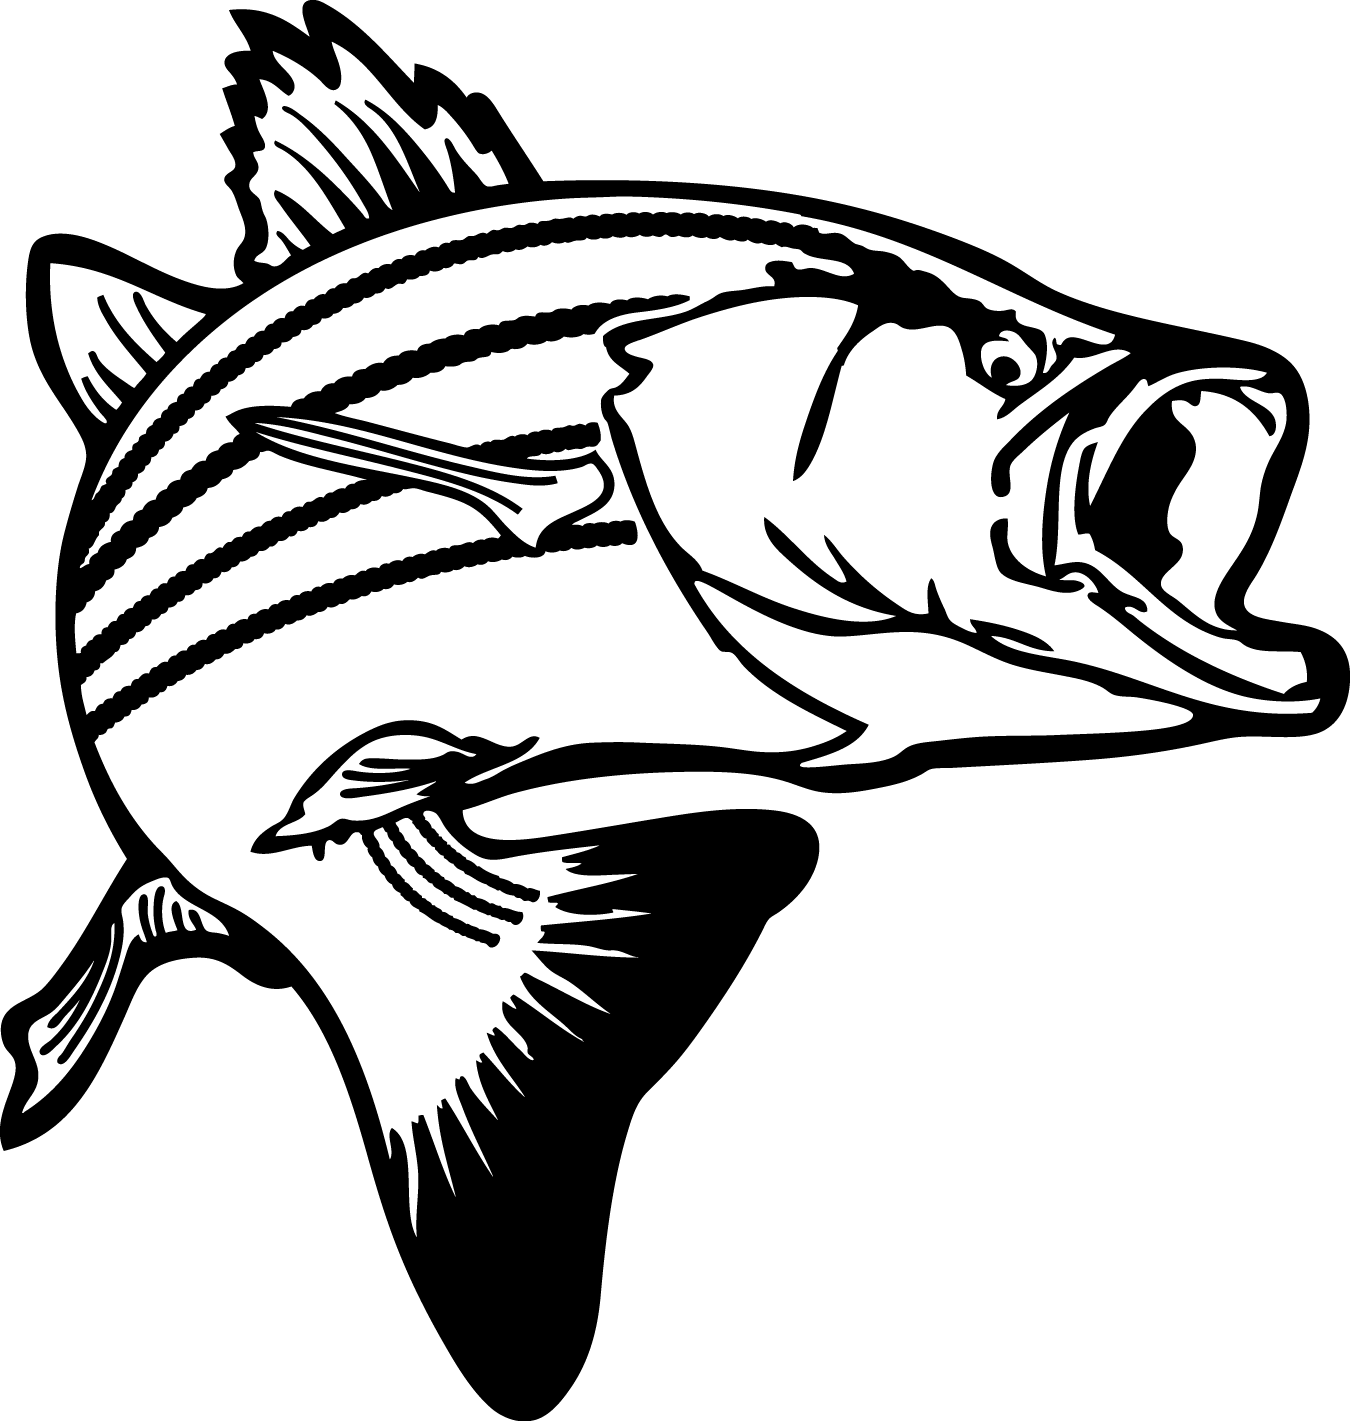 jumping bass fish clip art clipart panda free clipart images rh pinterest com free fishing clipart black and white free fishing clipart black and white